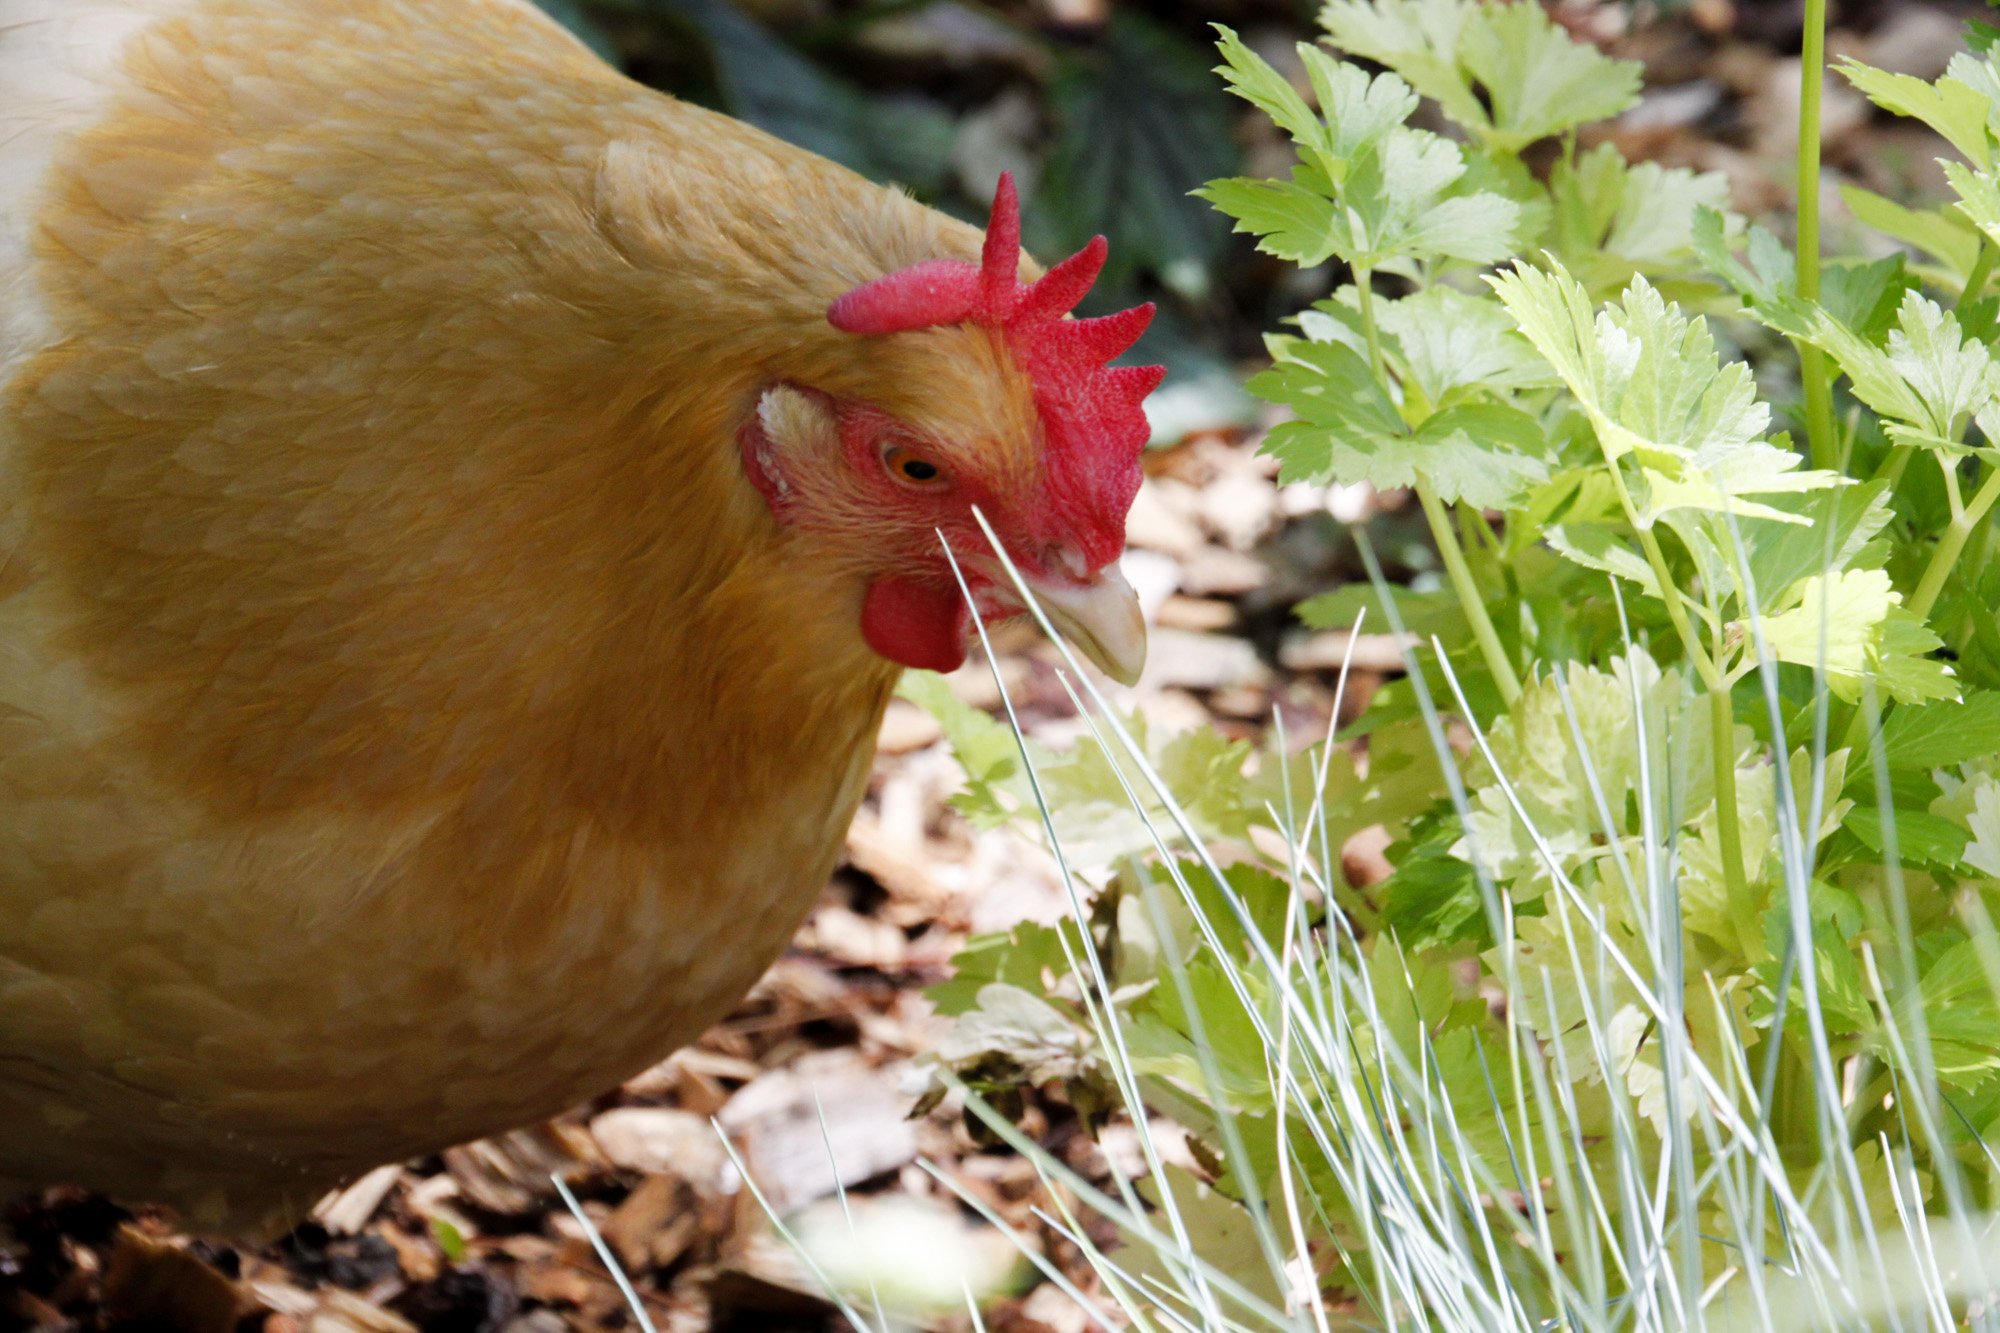 free ranging chicken in the garden admiring parsley